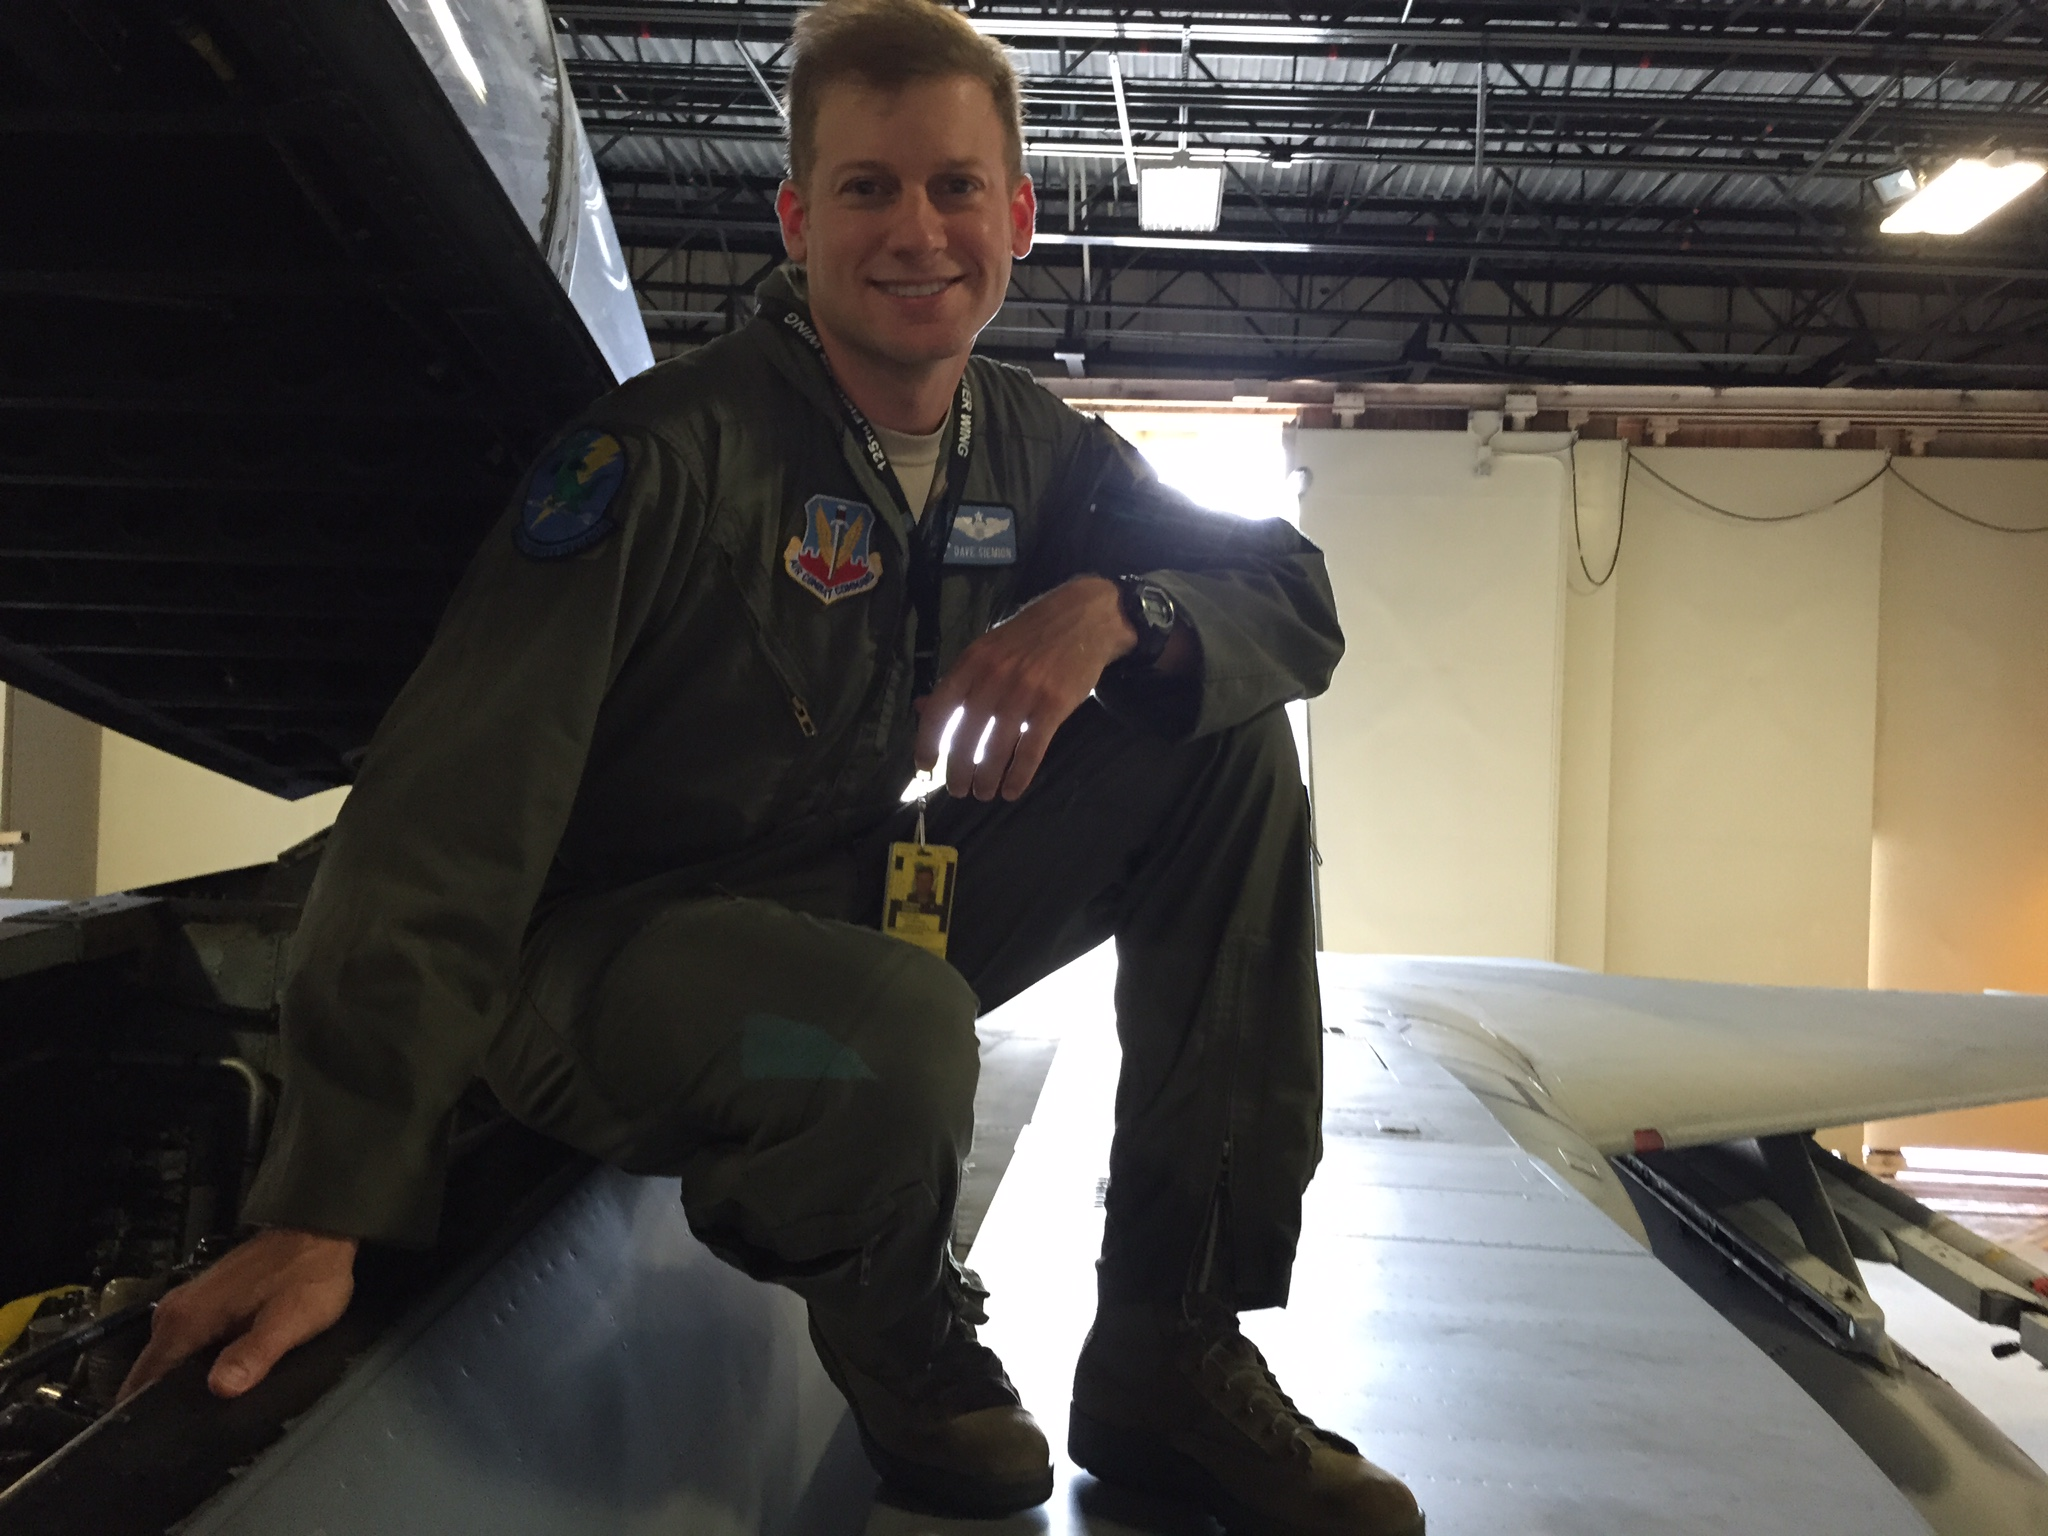 David S., a pilot, sitting on top of a plane